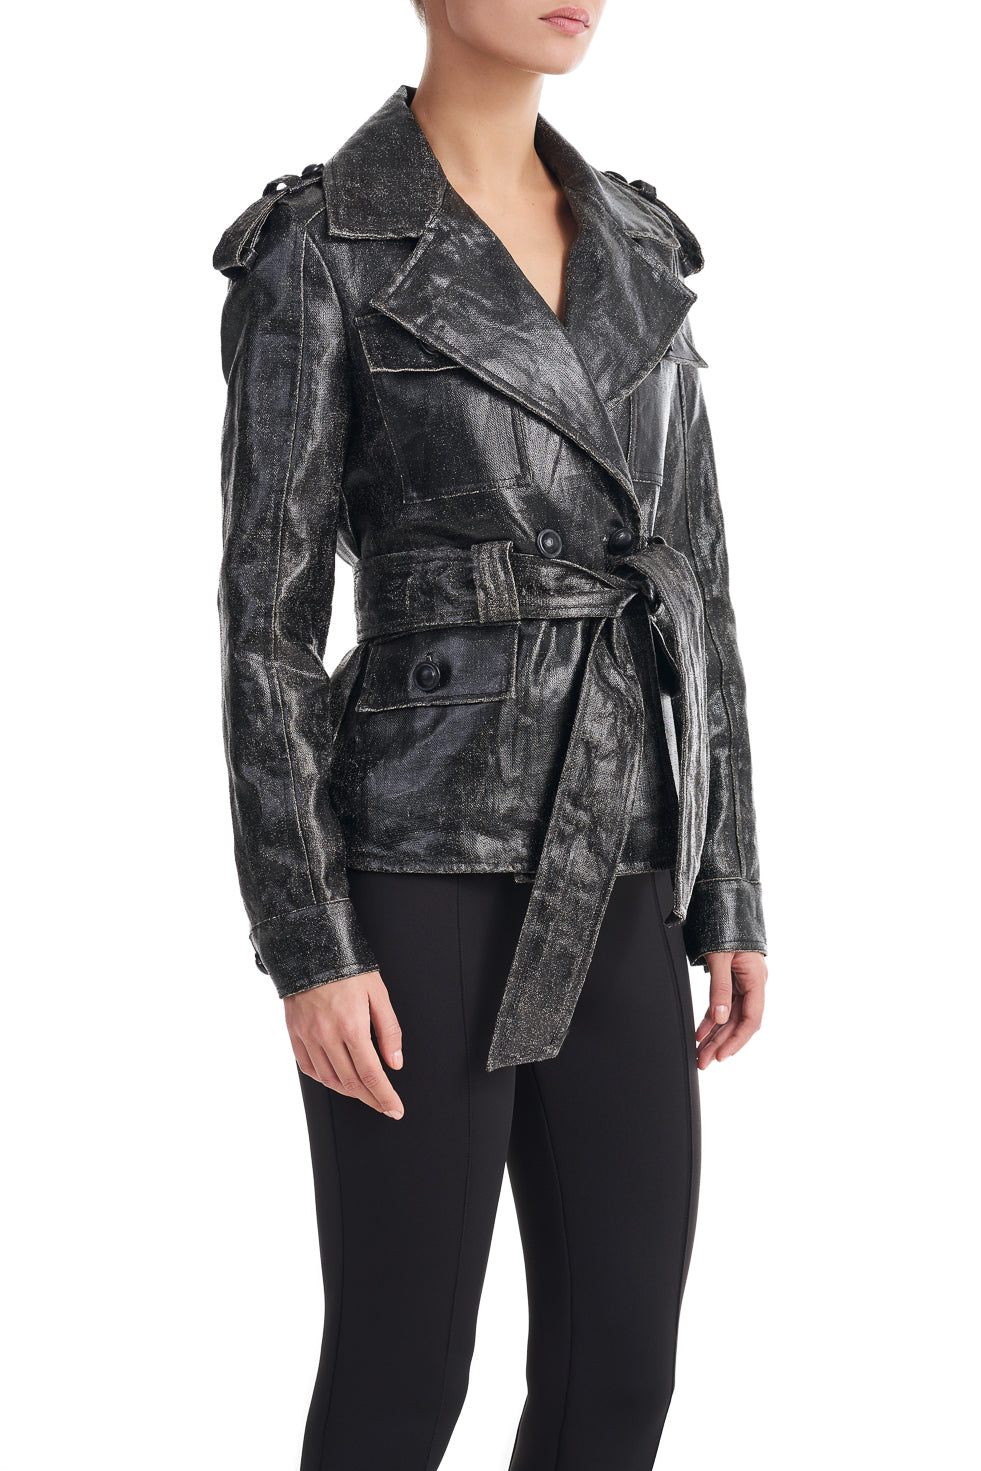 Janet Black Belted Trench Jacket